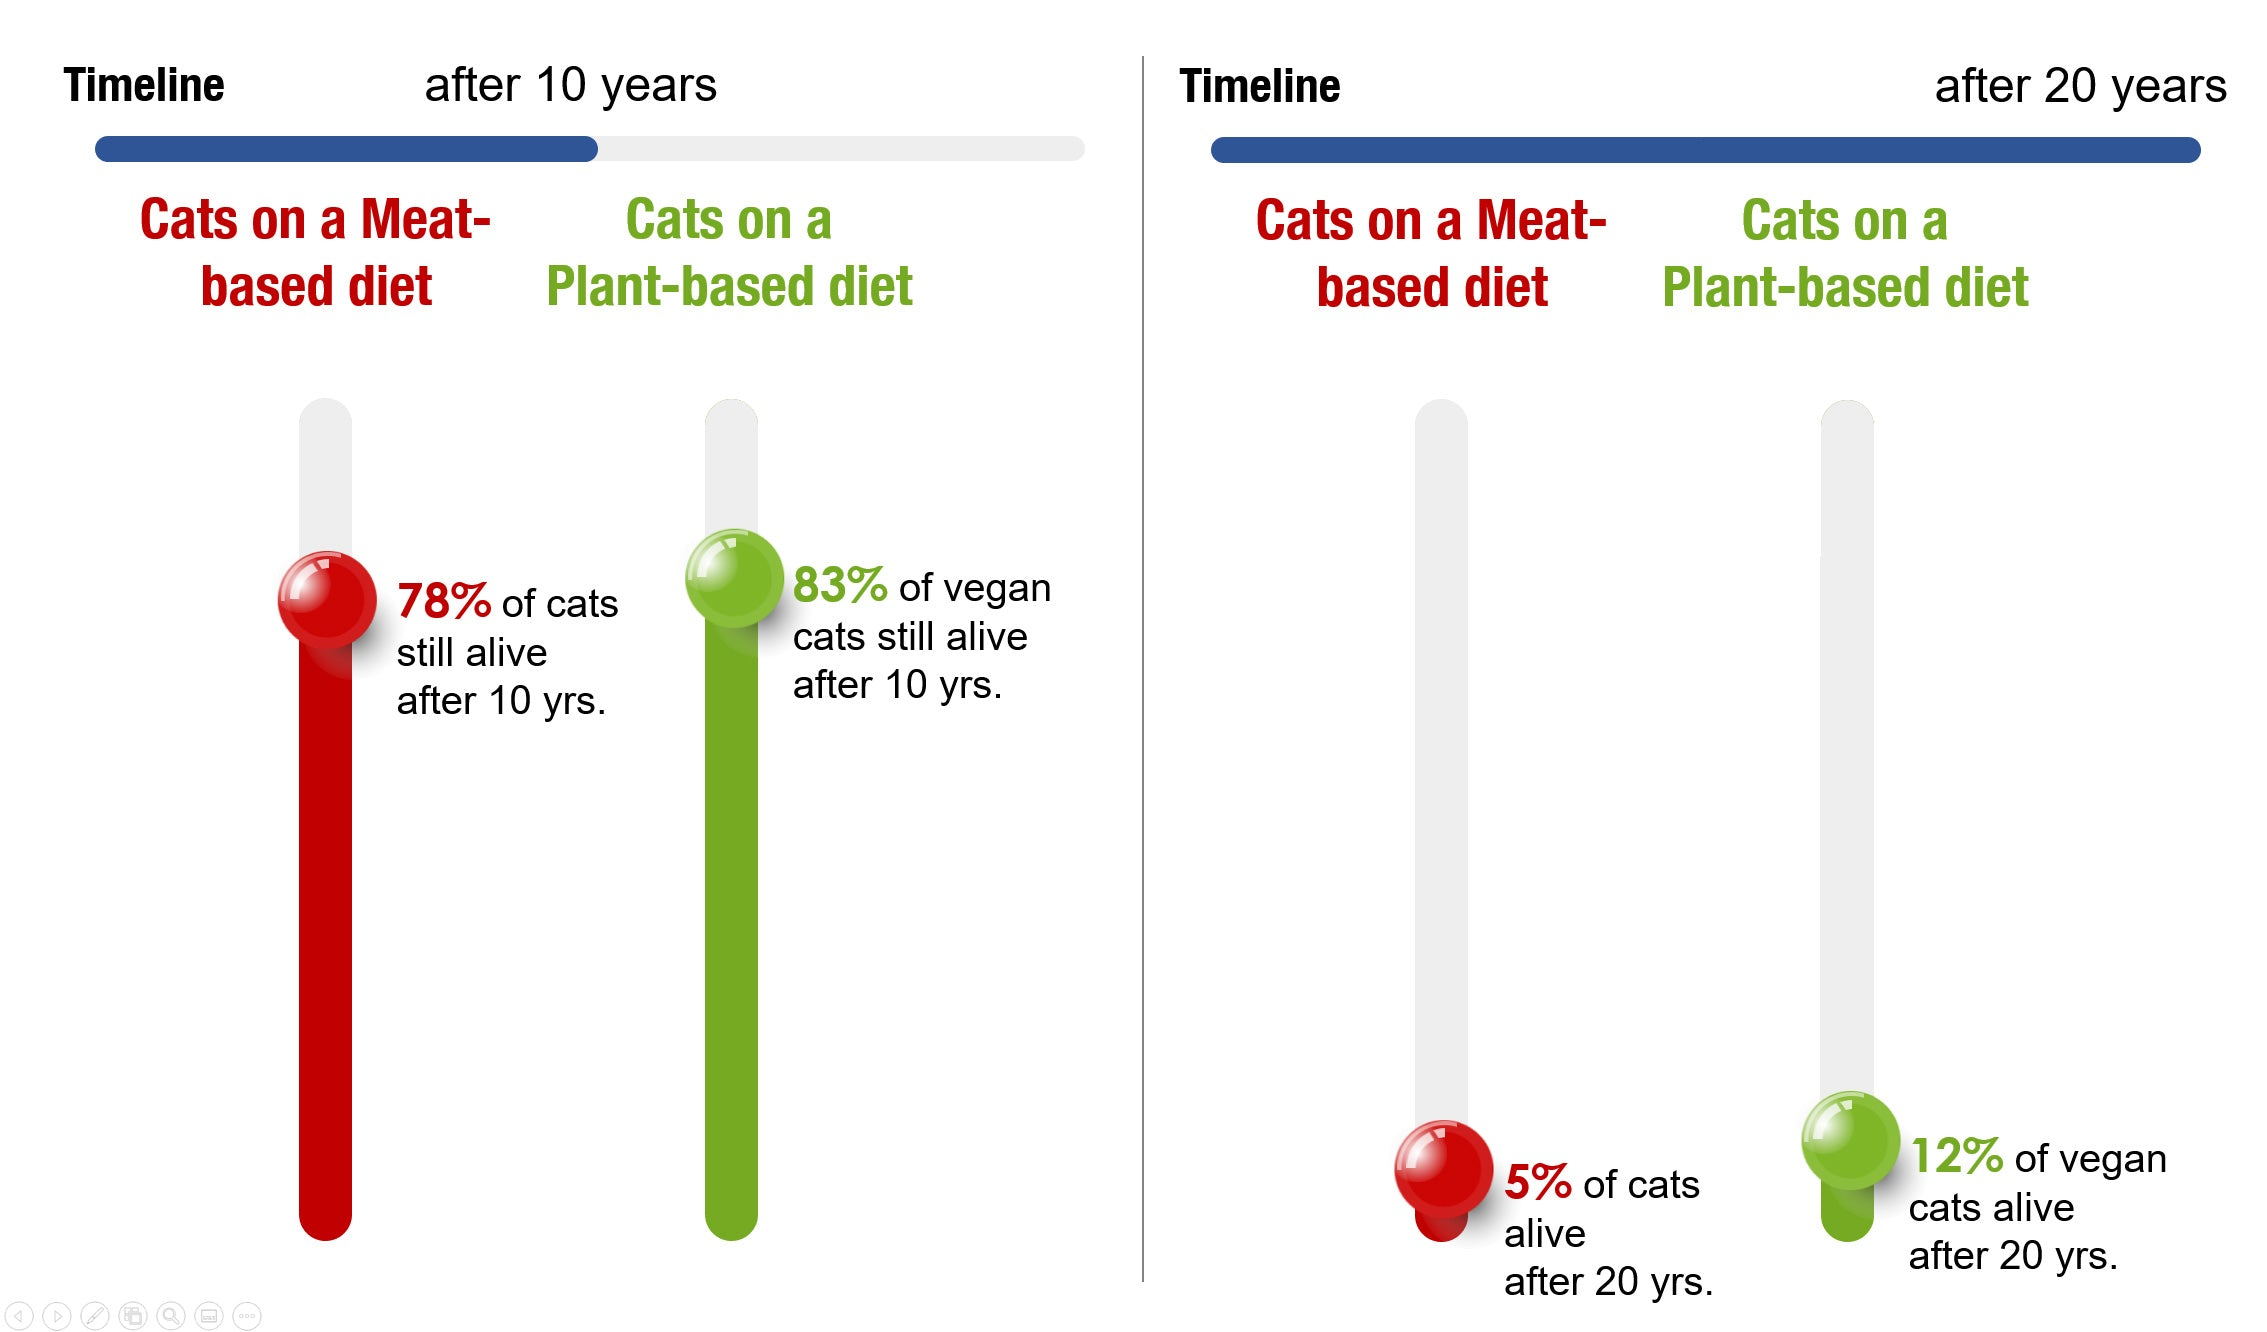 longevity of cats on a vegan diet / lifespan of cats on plant-based diet